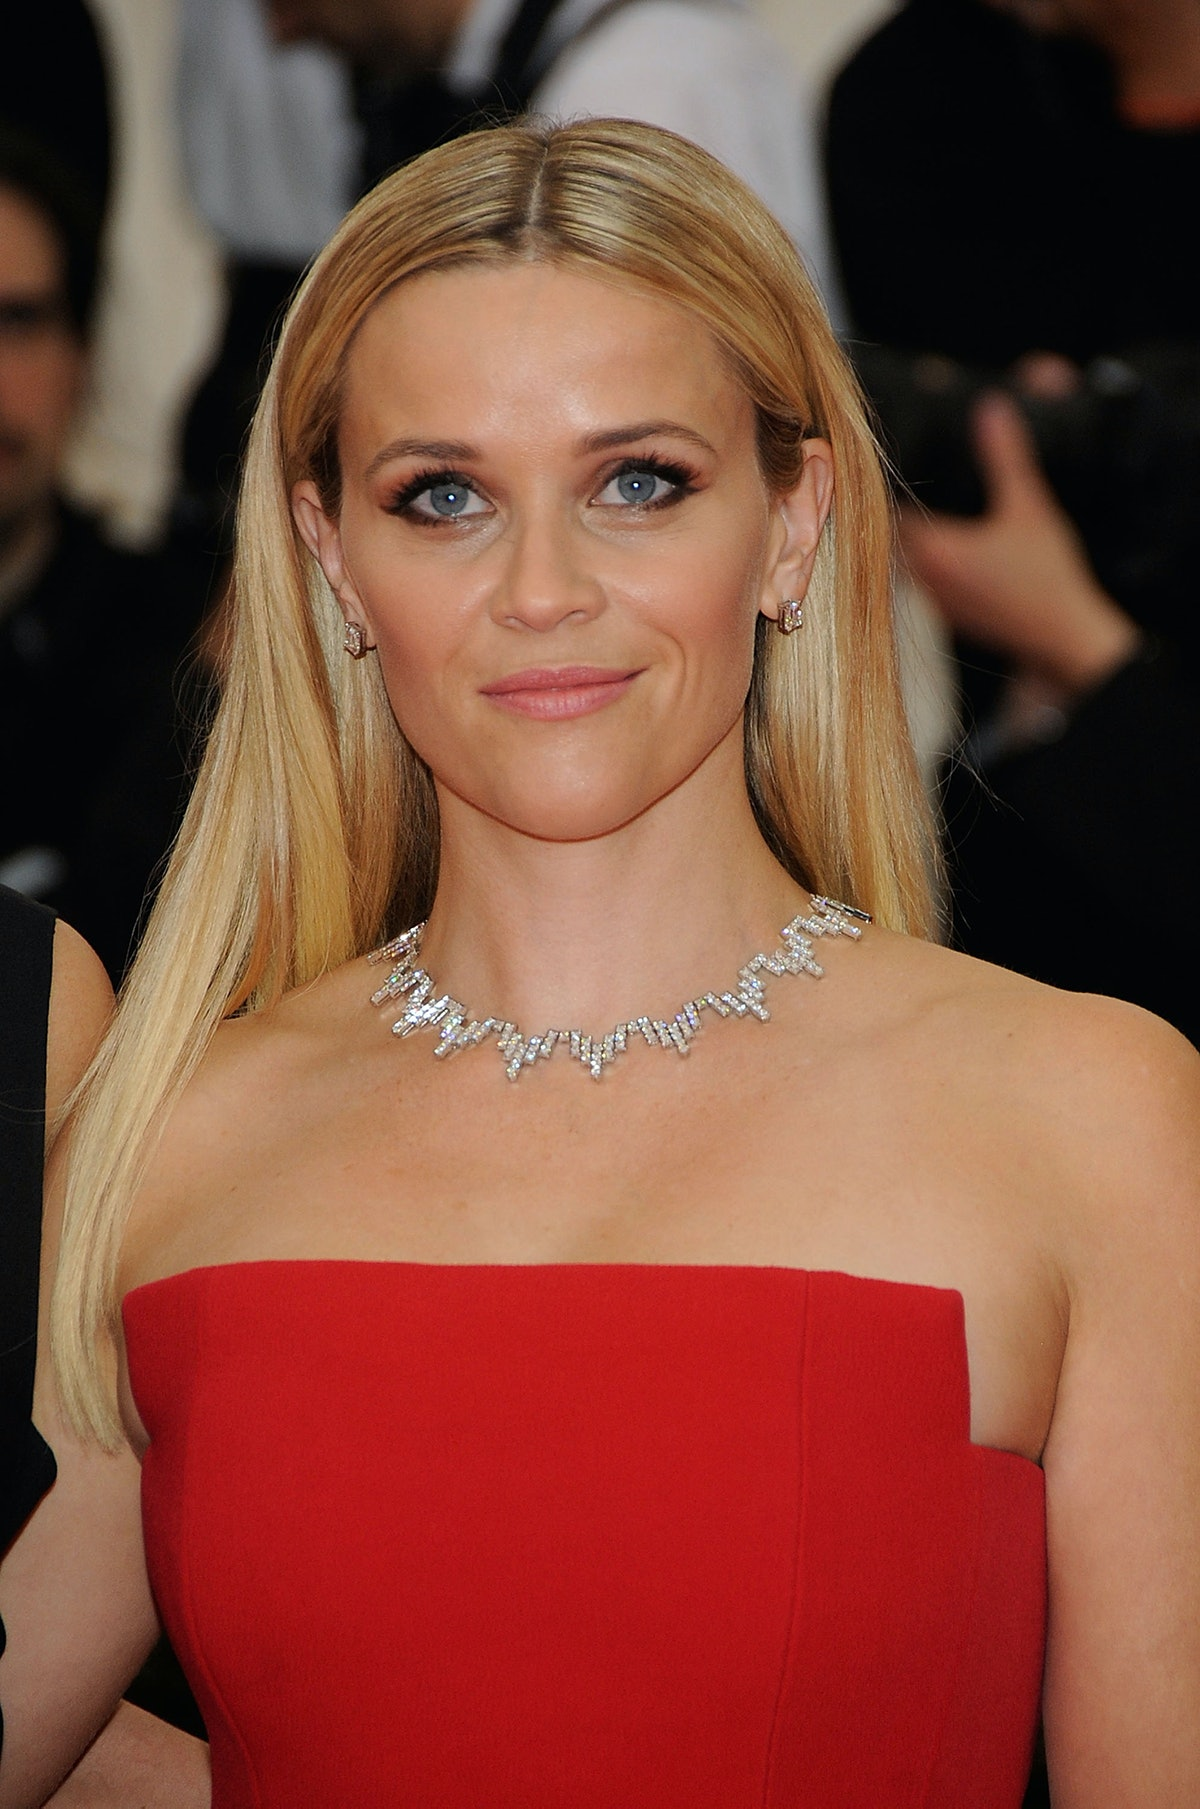 Reese Witherspoon's Met Ball Beauty